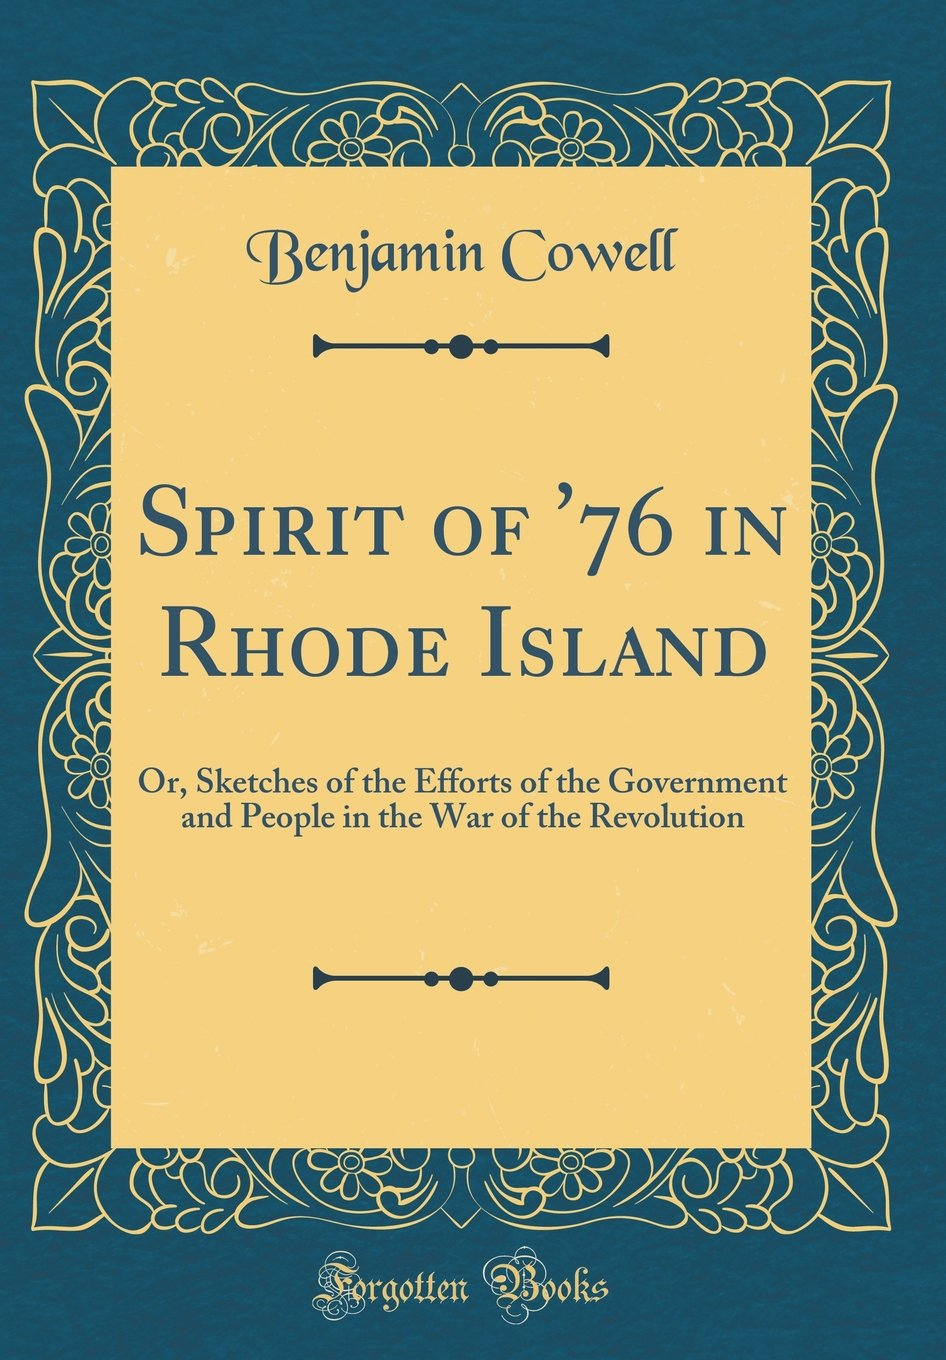 Spirit of '76 in Rhode Island: Or, Sketches of the Efforts of the Government and People in the War of the Revolution (Classic Reprint) ebook